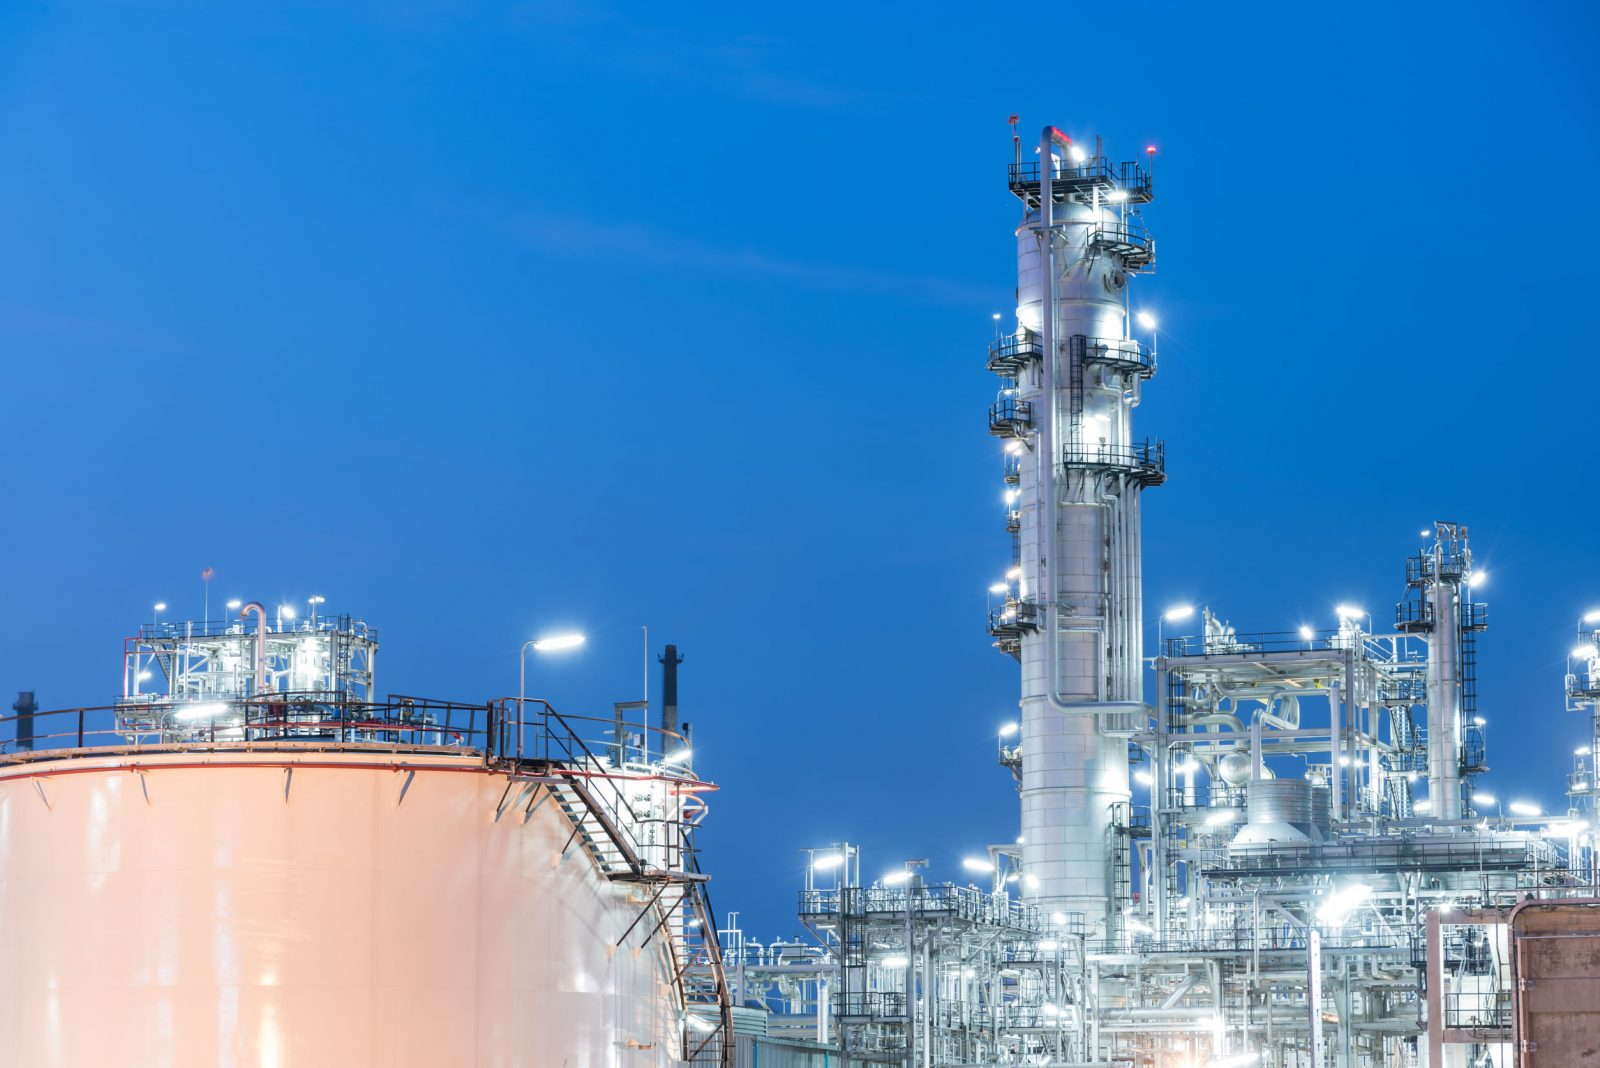 Oil industry refinery factory